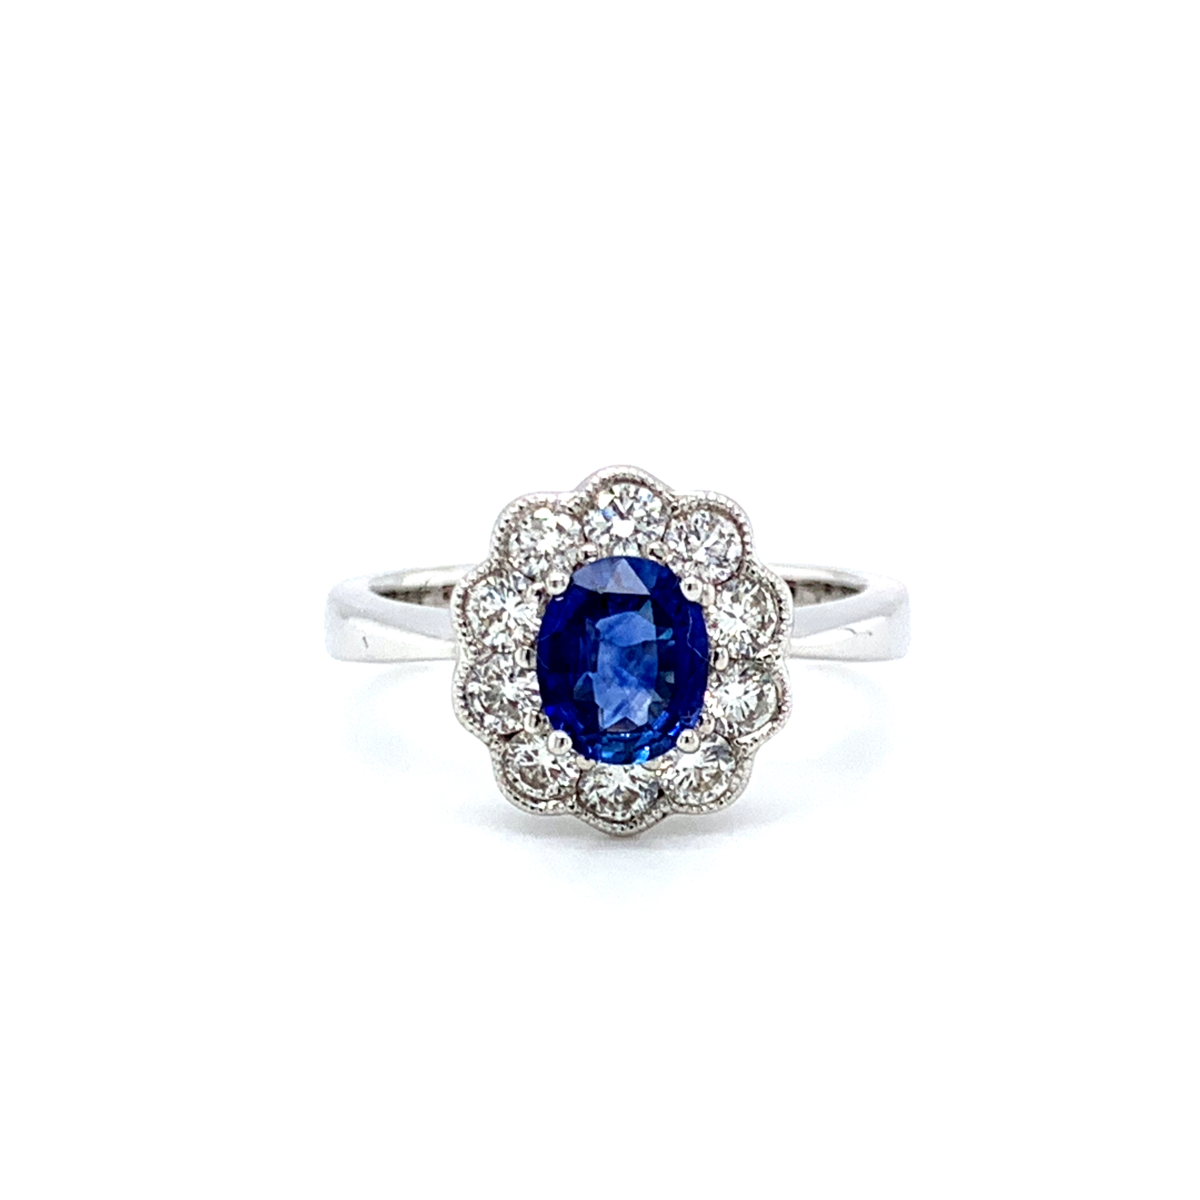 Poppy Oval Cut Blue Sapphire Halo Engagement Ring